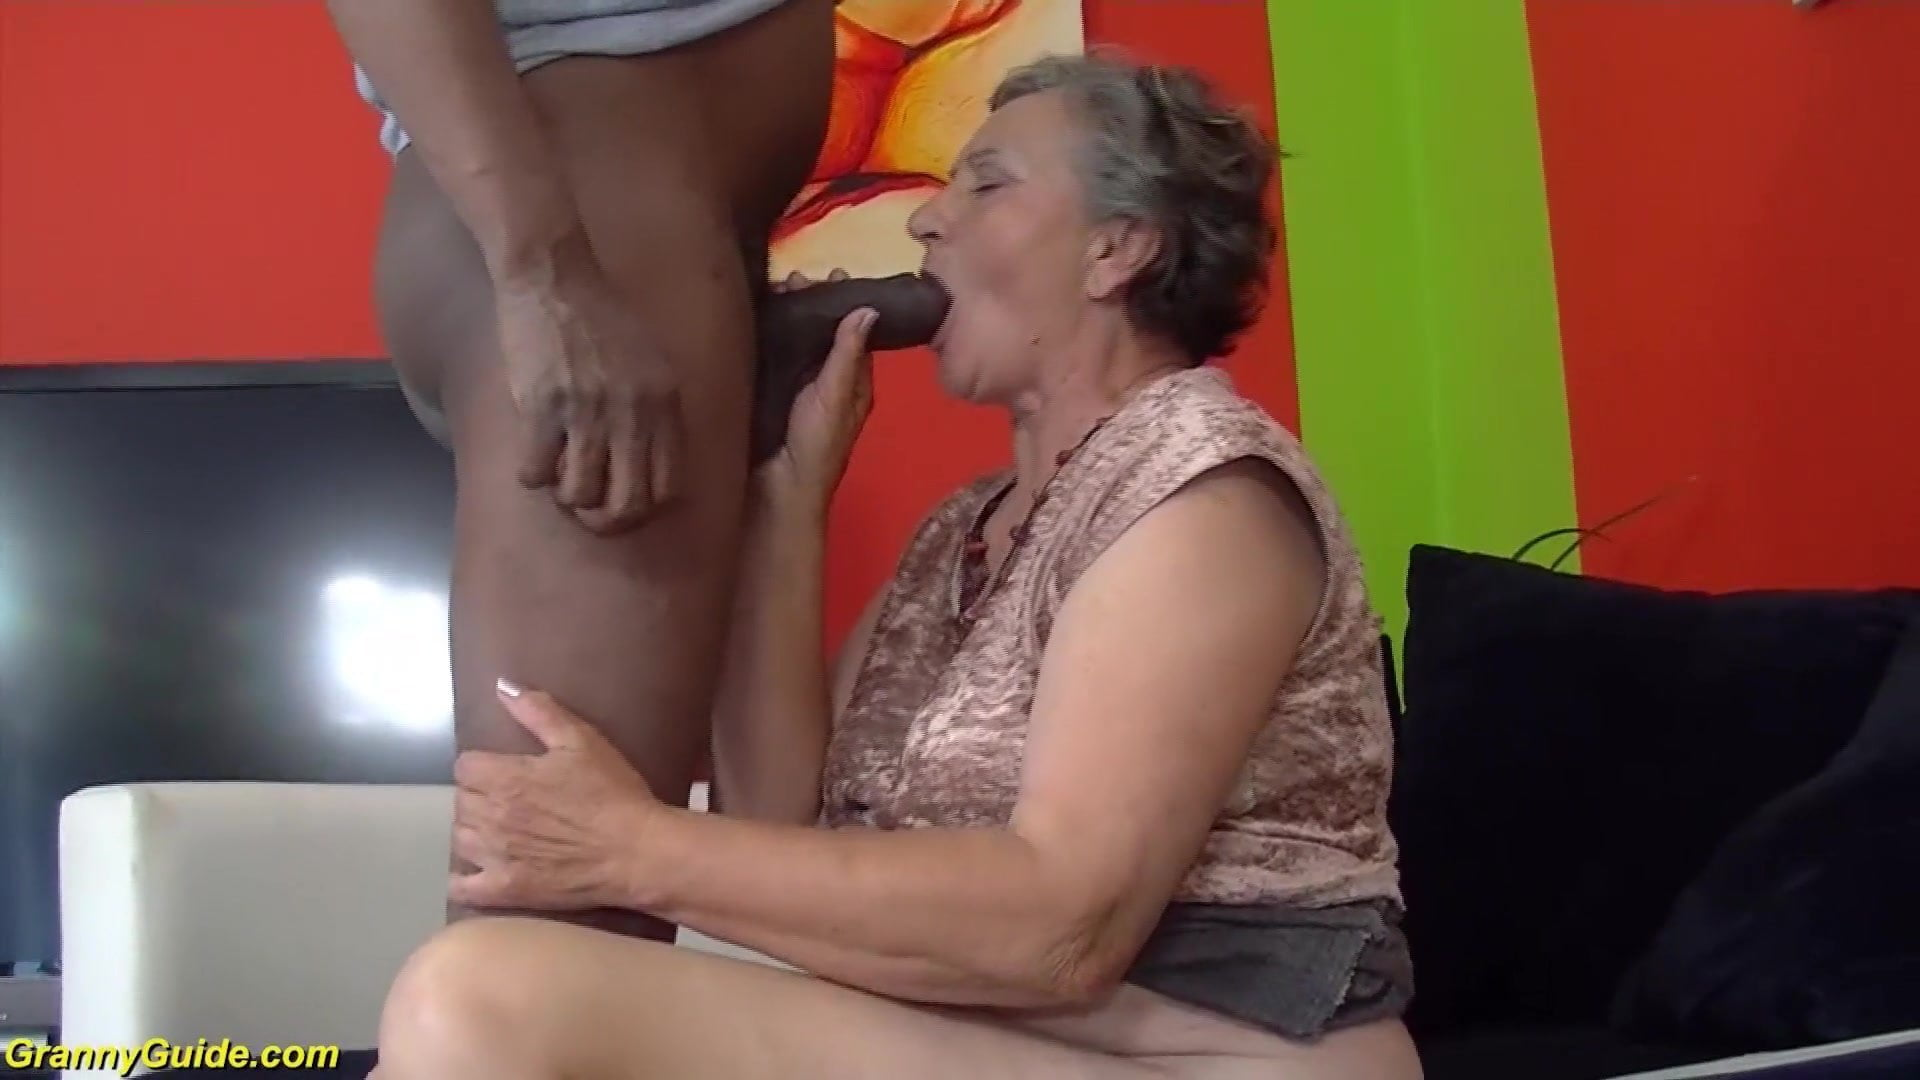 granny sex 70 torrent